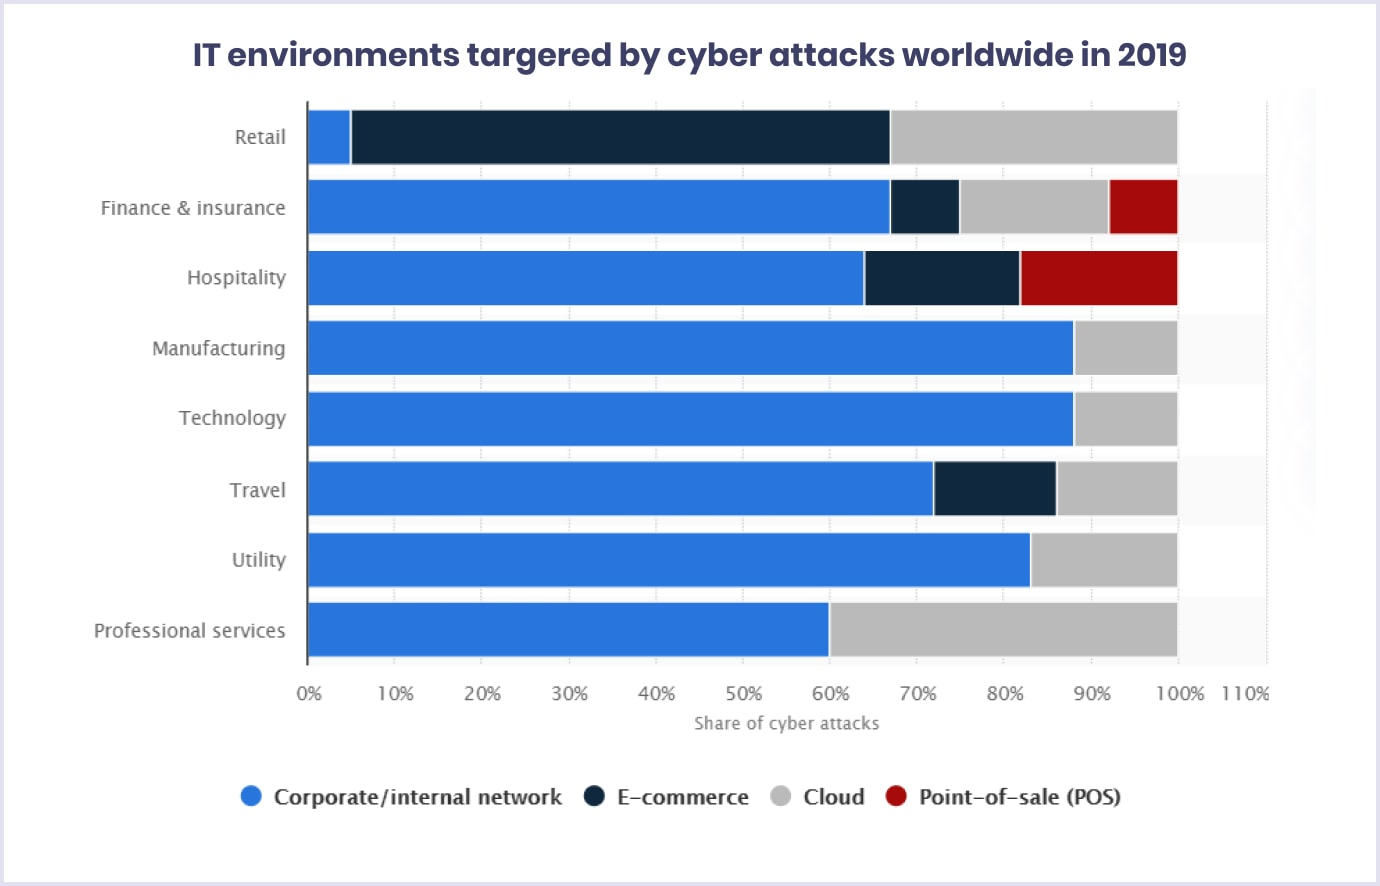 The most targeted industries by cyber atttacks